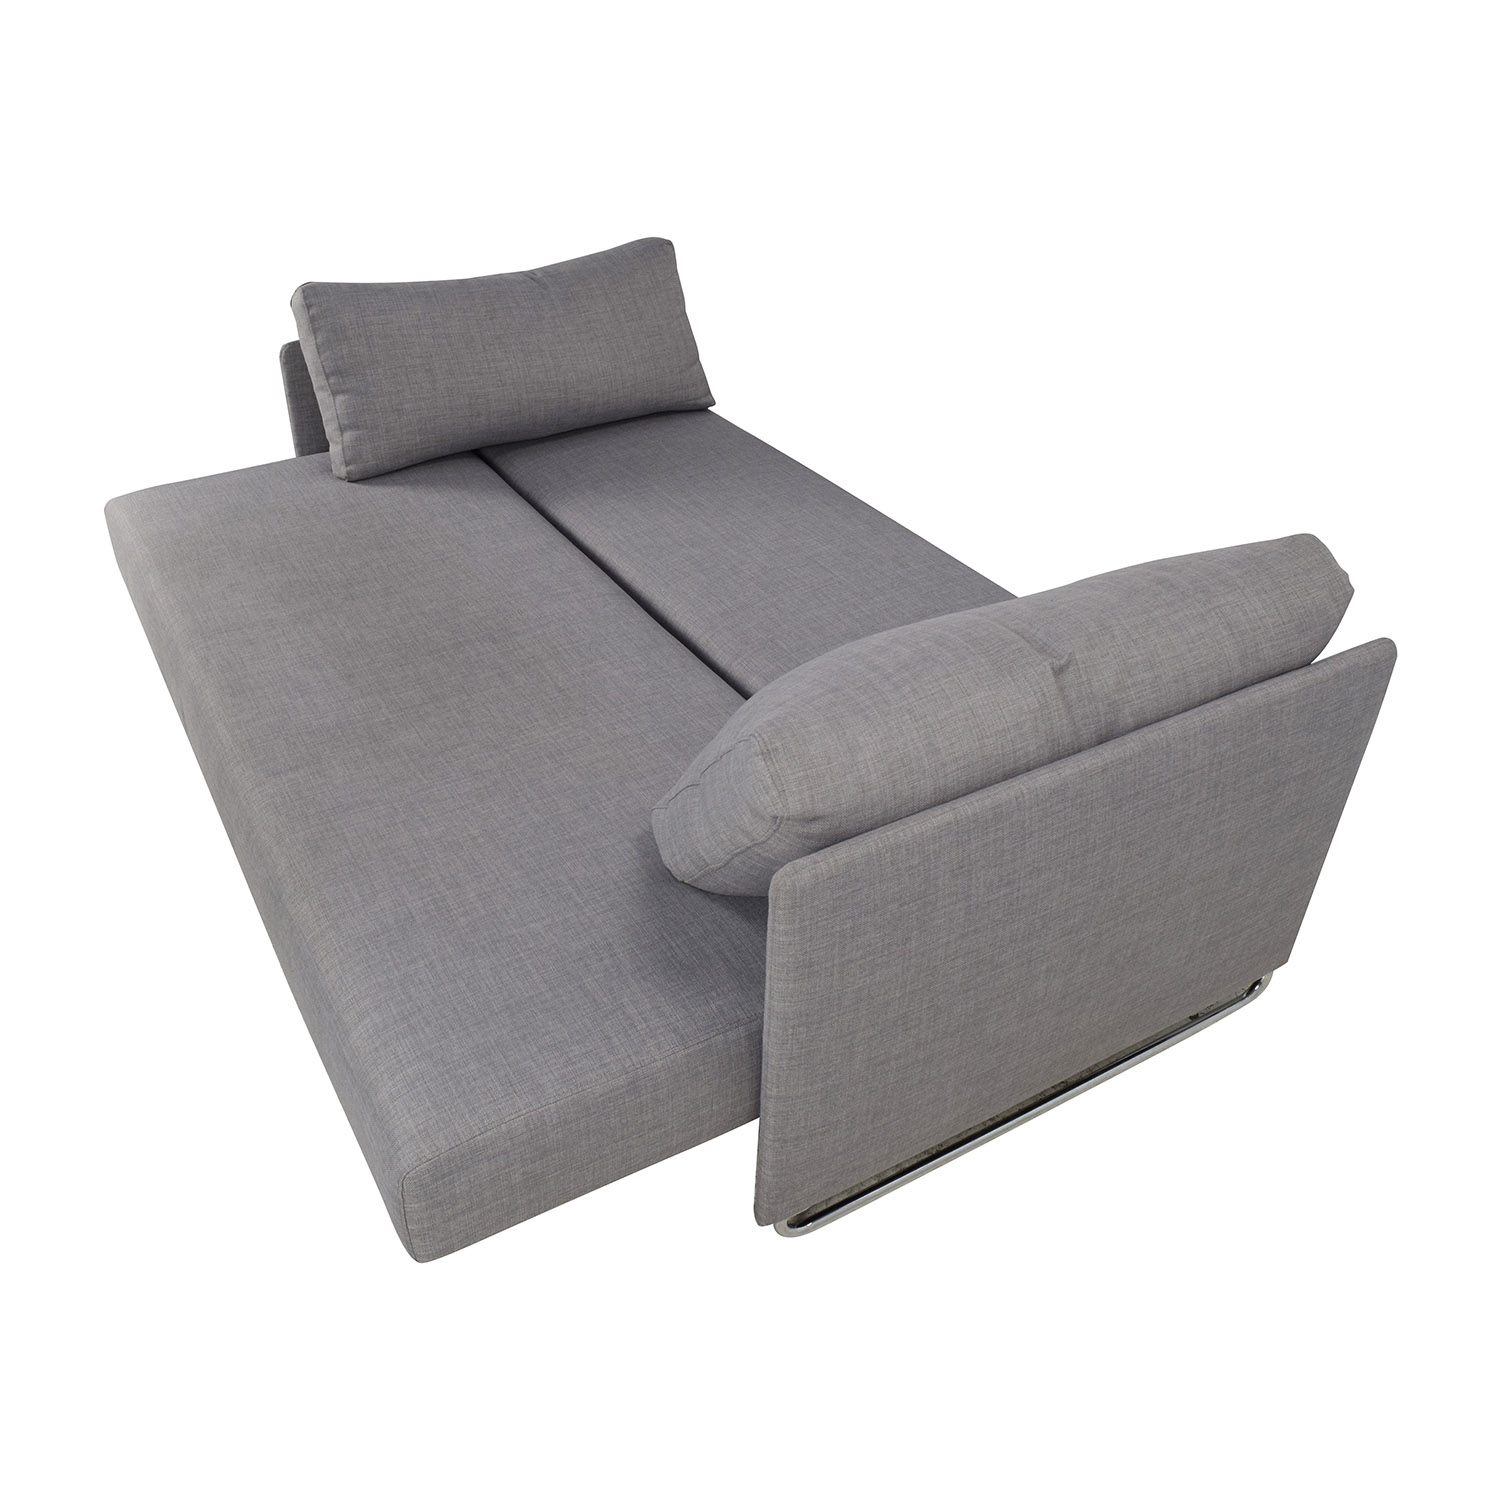 cb2 sectional sofa bed lounges melbourne 50 off tandom grey sleeper sofas